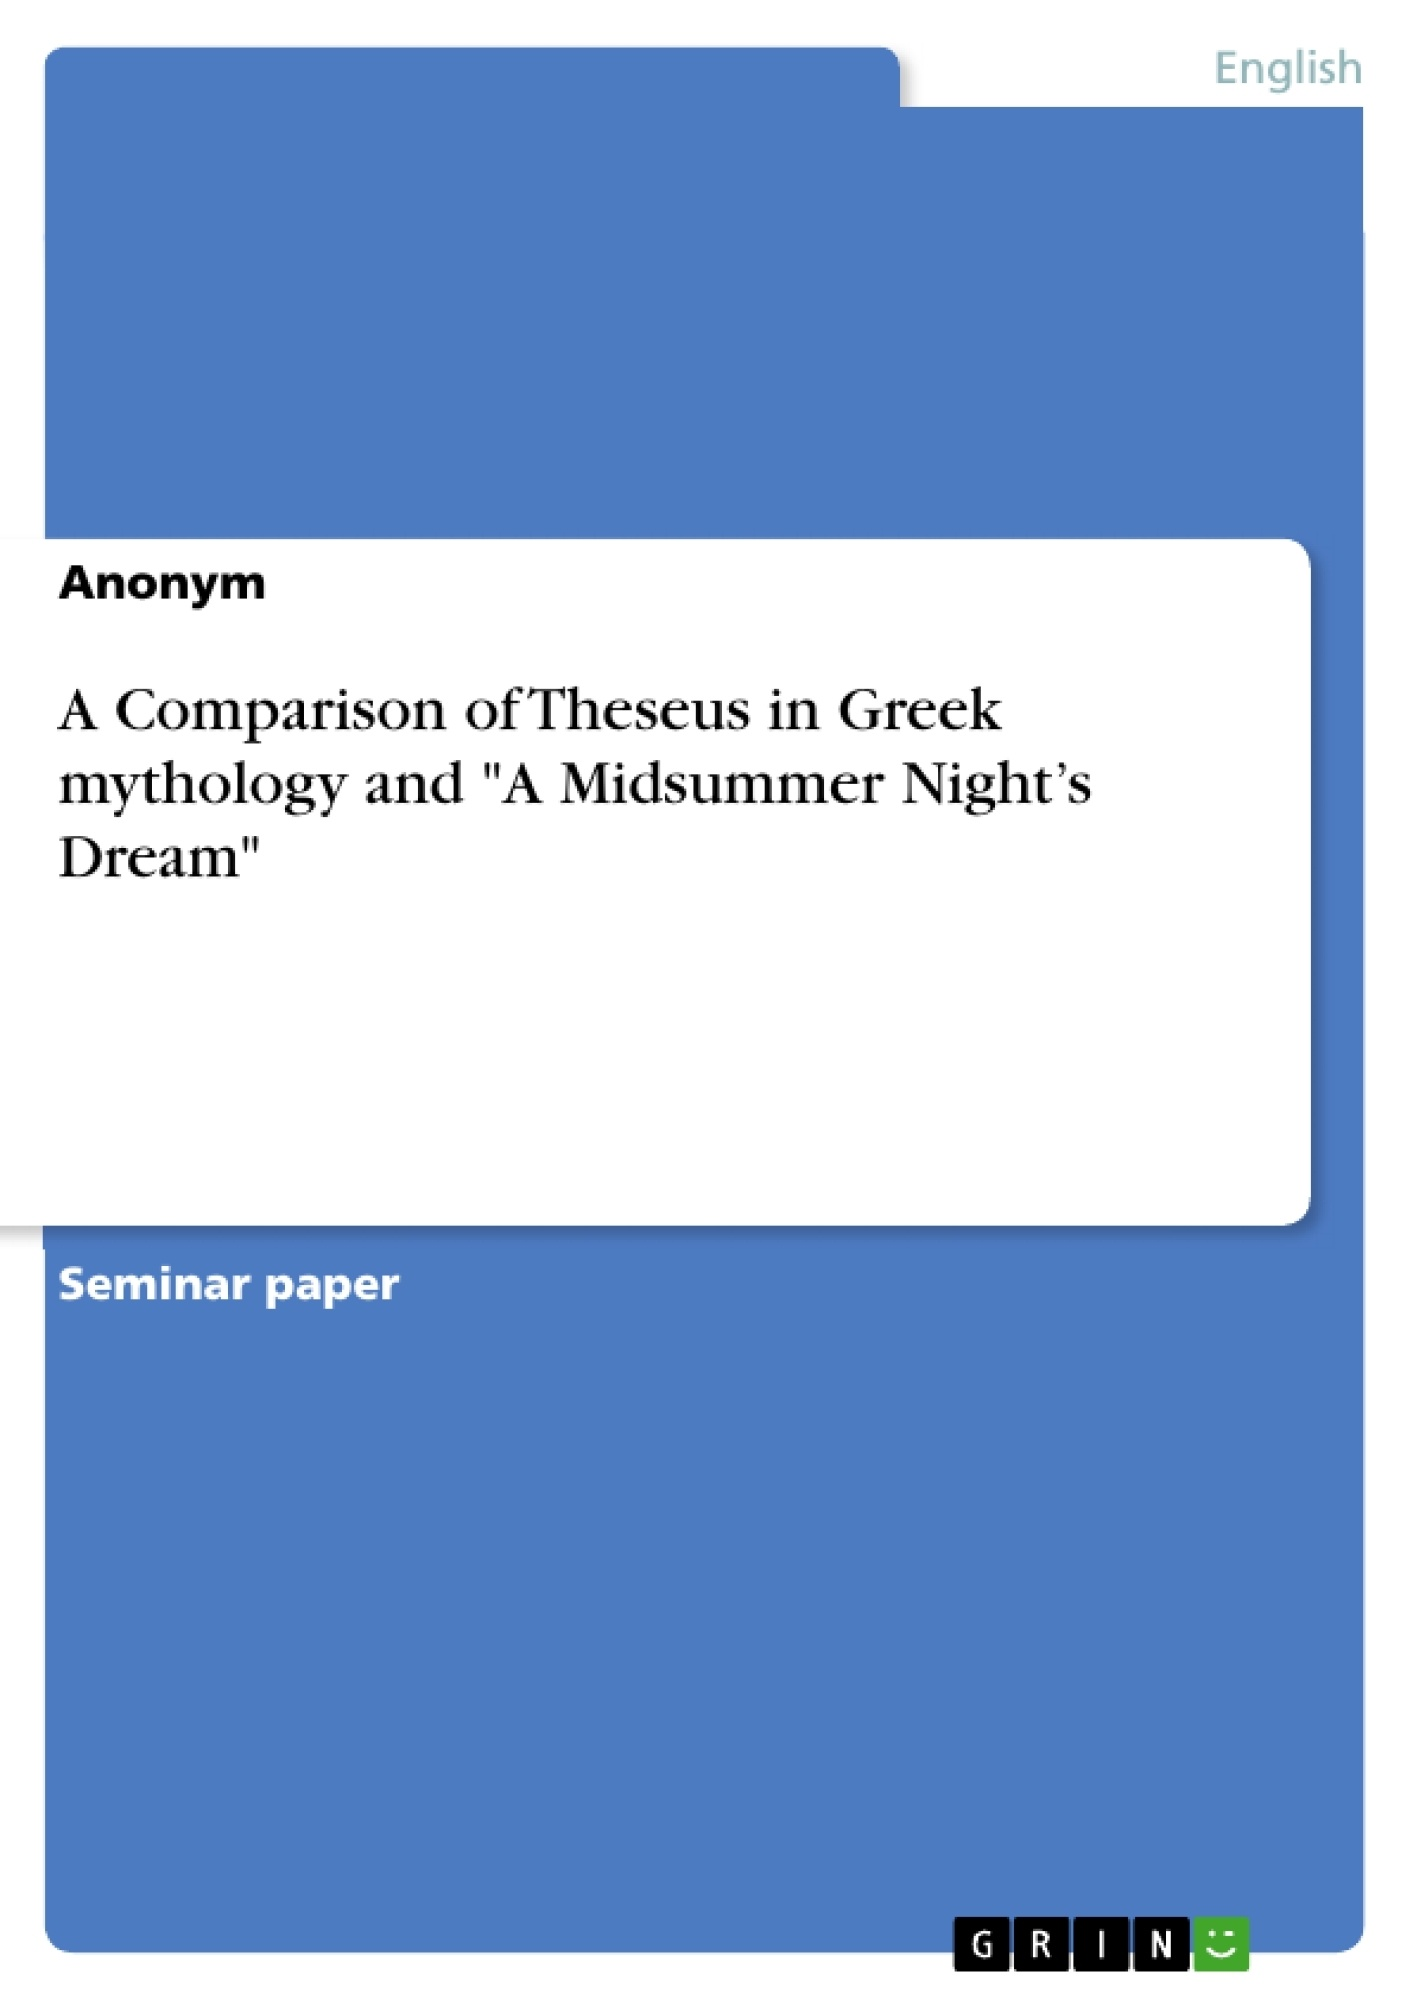 a comparison of theseus in greek mythology and a midsummer a comparison of theseus in greek mythology and a midsummer publish your master s thesis bachelor s thesis essay or term paper